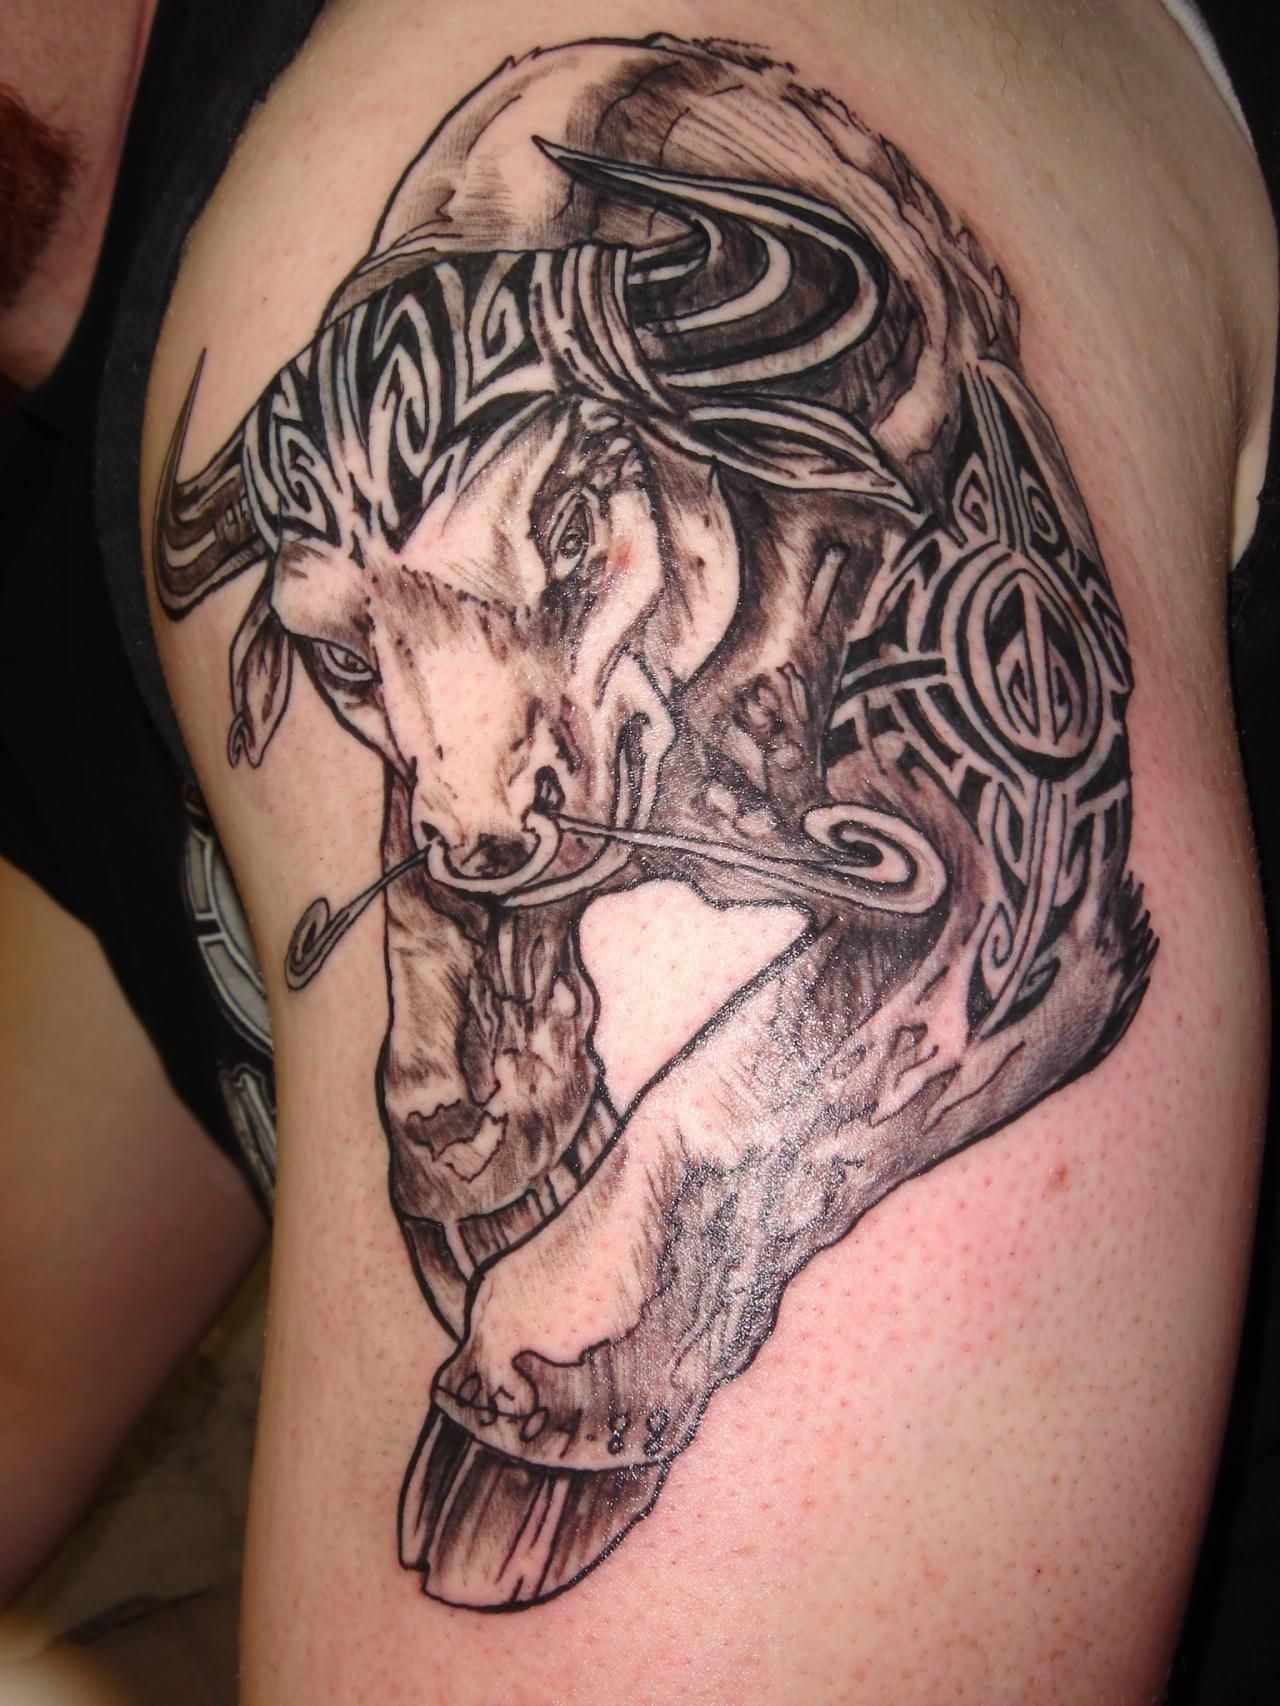 Pics photos taurus tattoos bull tattoo art - Bull Tattoos Designs And Ideas